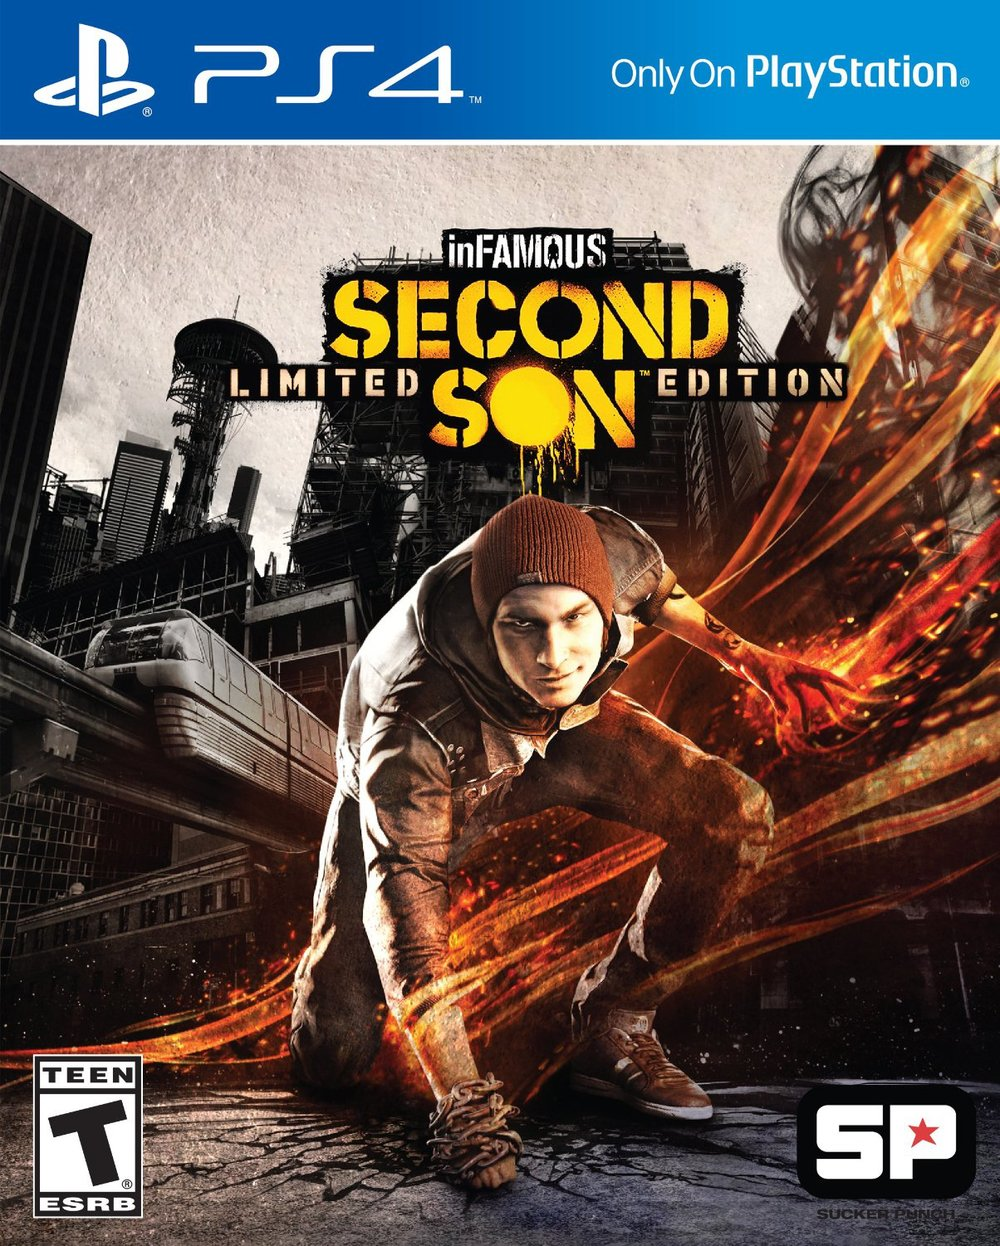 inFAMOUS: SECOND SON:  Kirsten voiced two characters in this game, the third in its widely successful franchise.